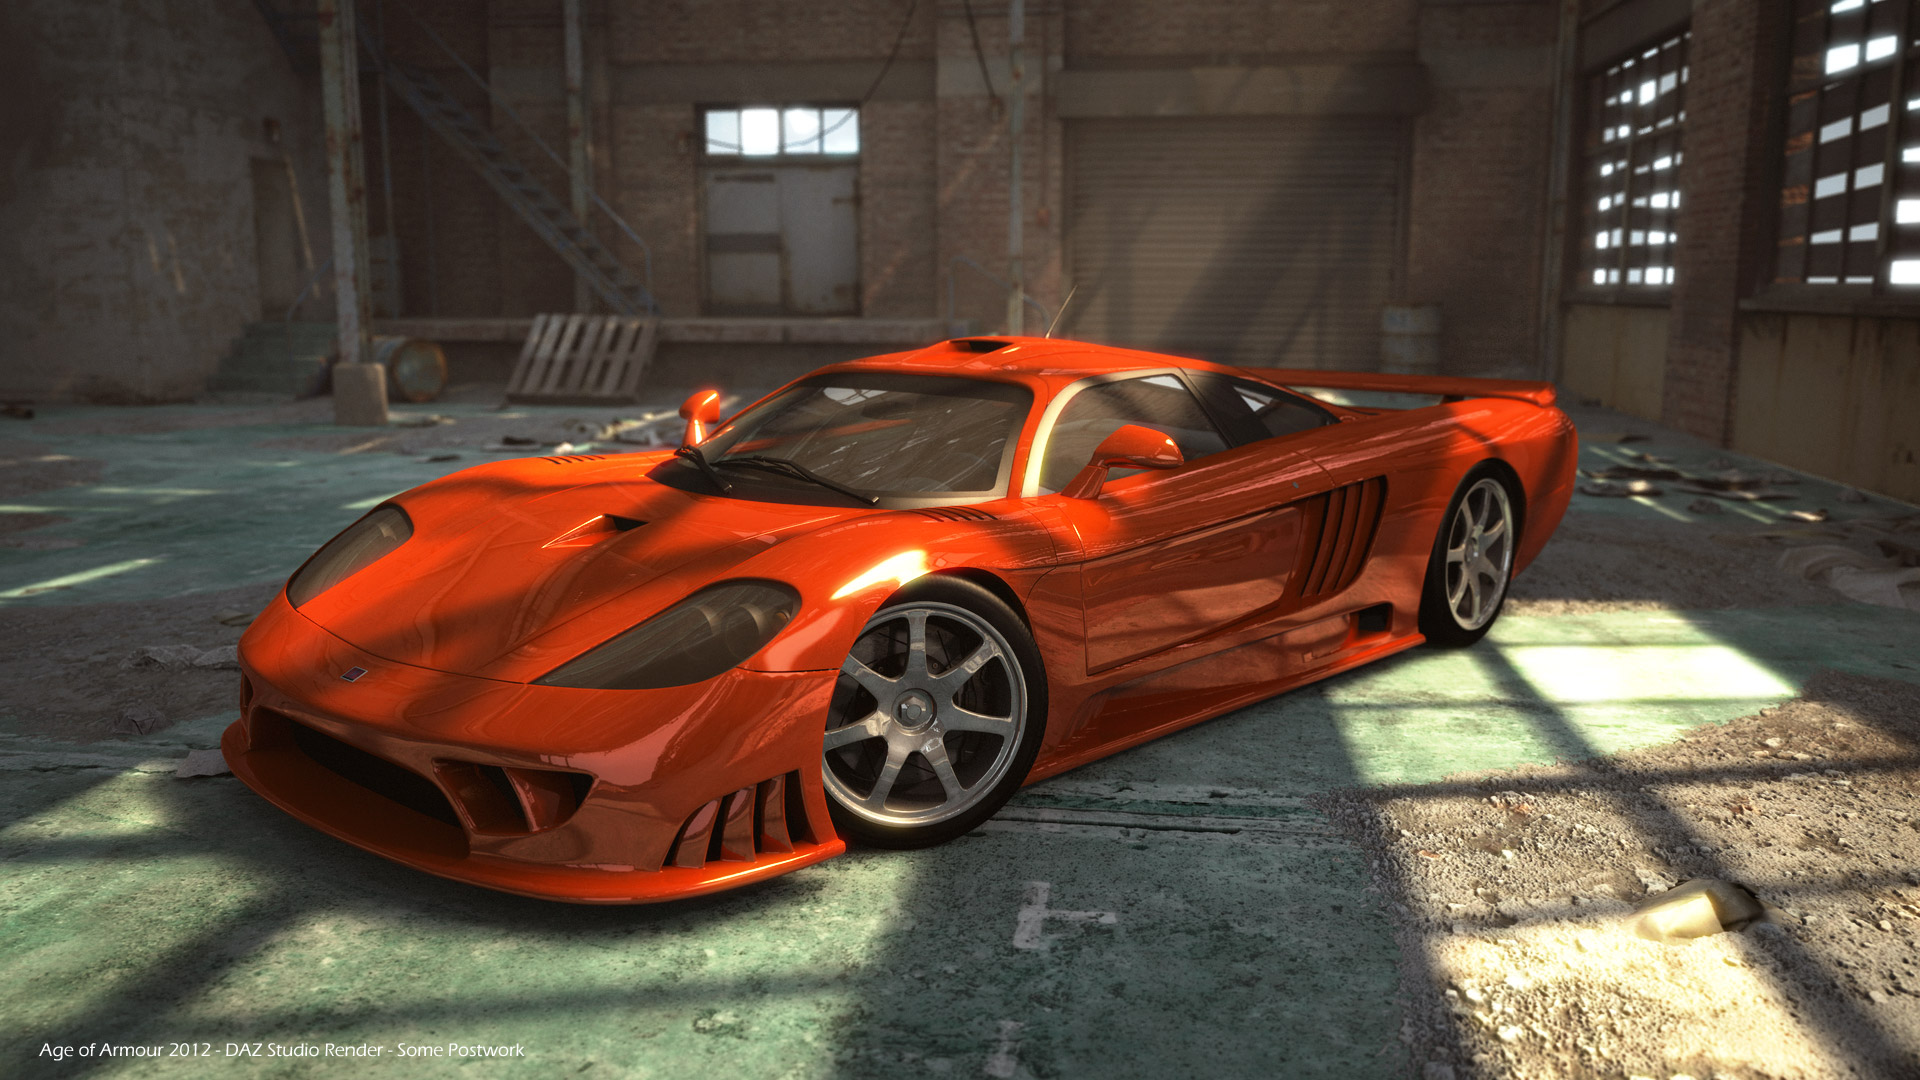 DAZ Studio render of an exotic sports car in a warehouse.